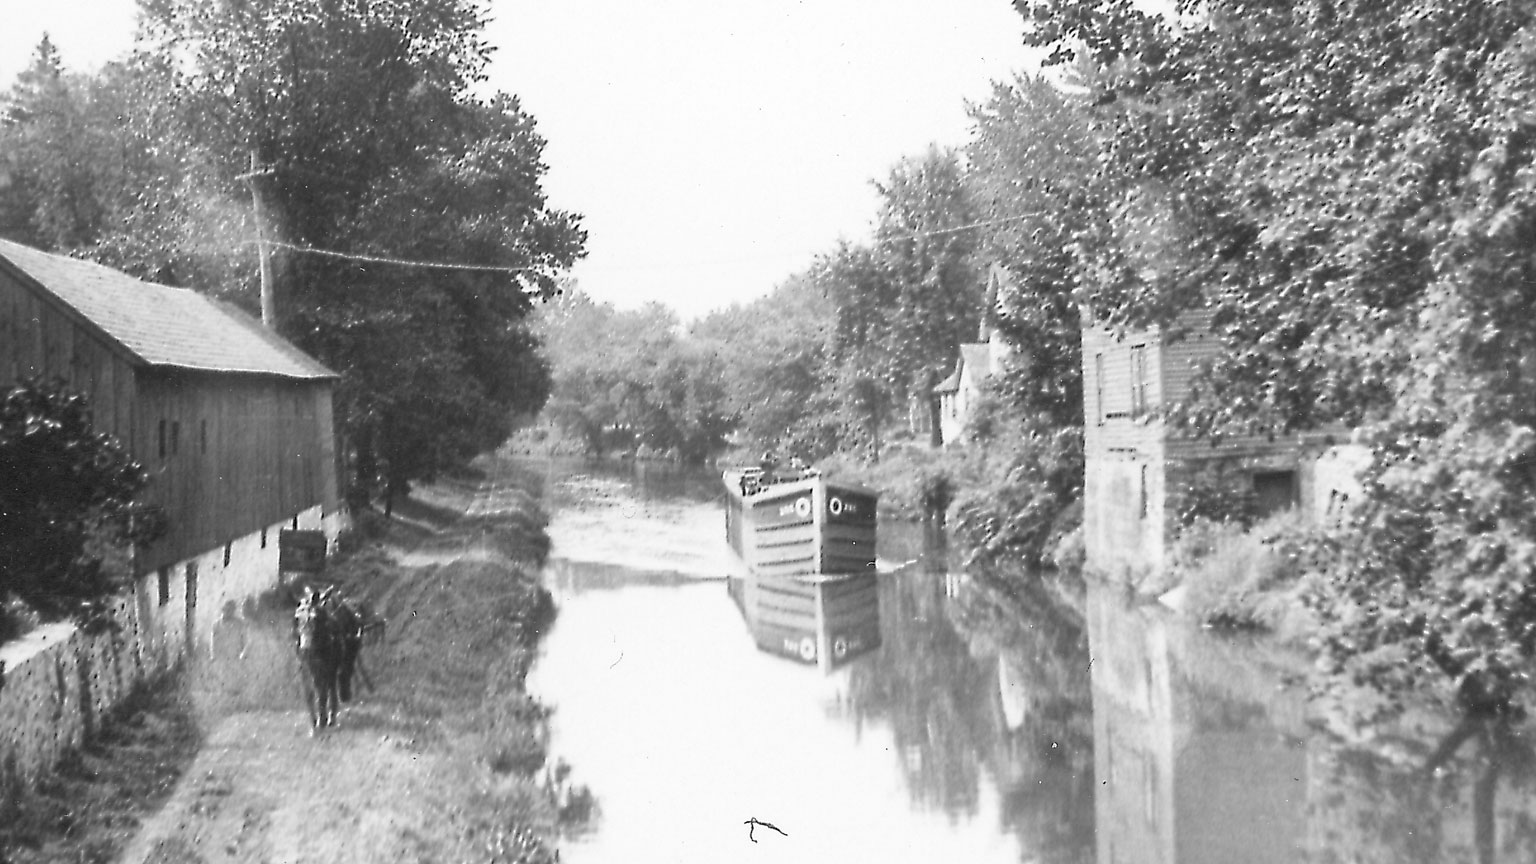 This is a beautiful picture of the canal, a canal boat and the mule team using the towpath near Riegelsville.